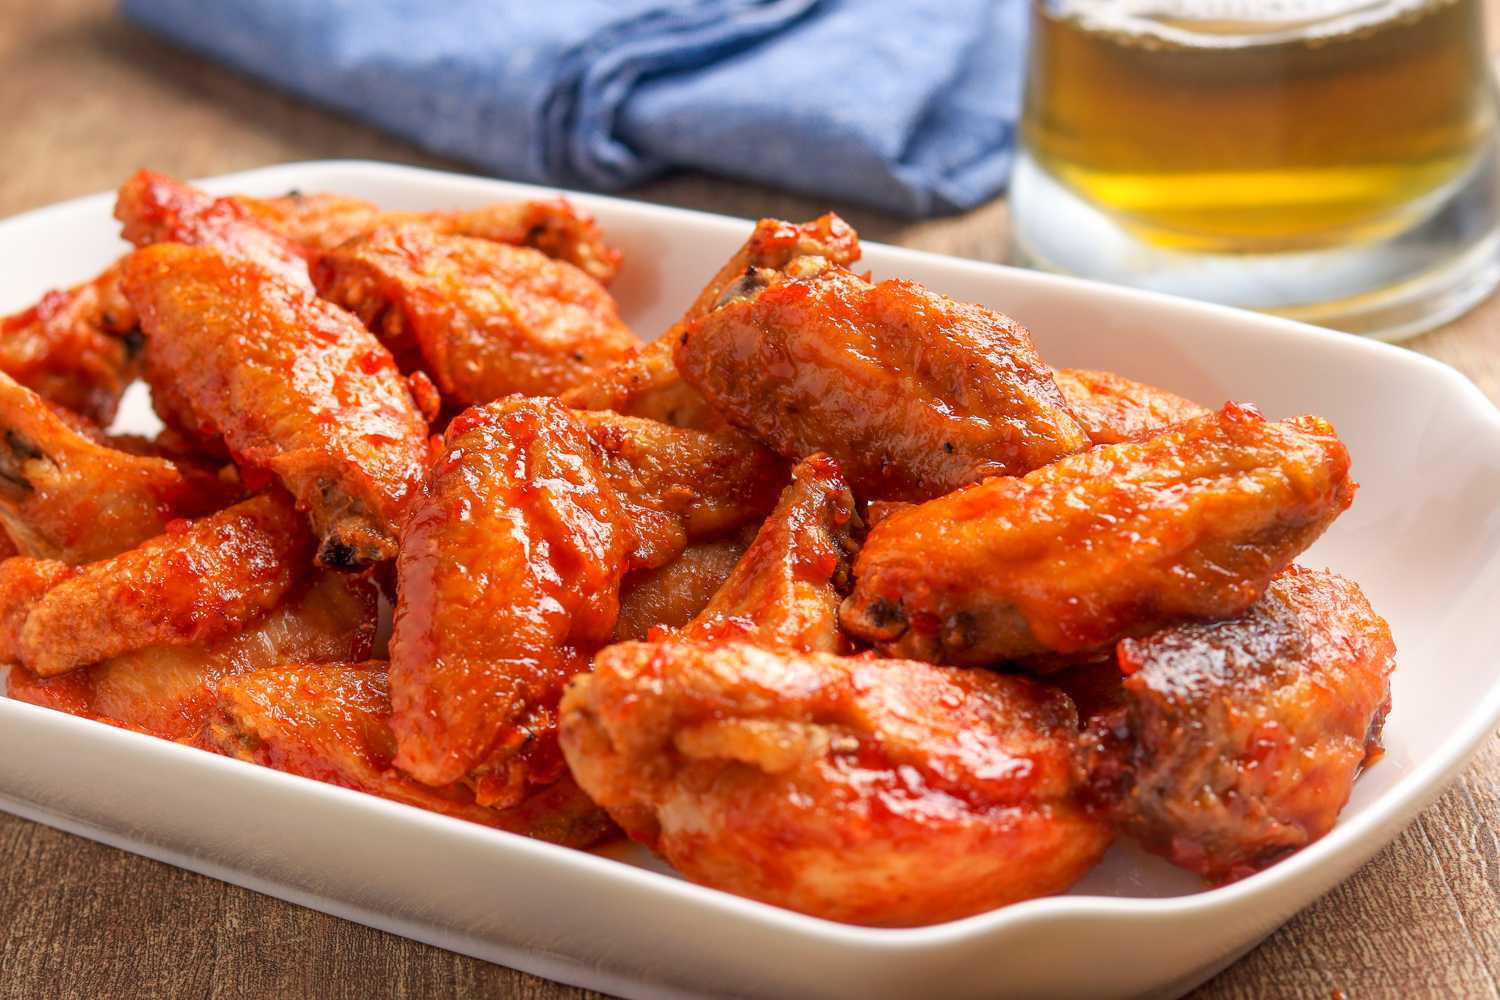 traditional-chicken-wings-912937-10-5b3f8c9ac9e77c00547241ab image